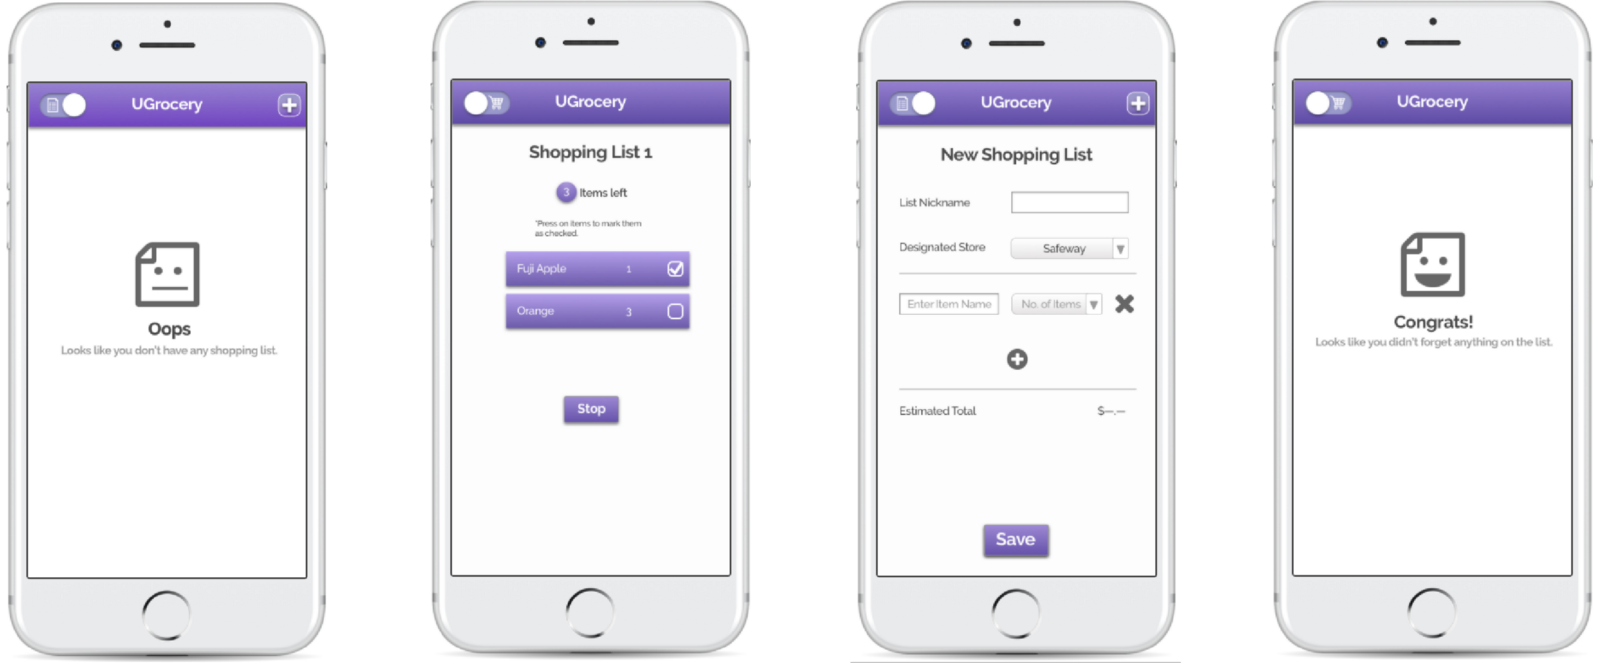 ugrocery plan and execute your grocery shopping jiewen luo medium